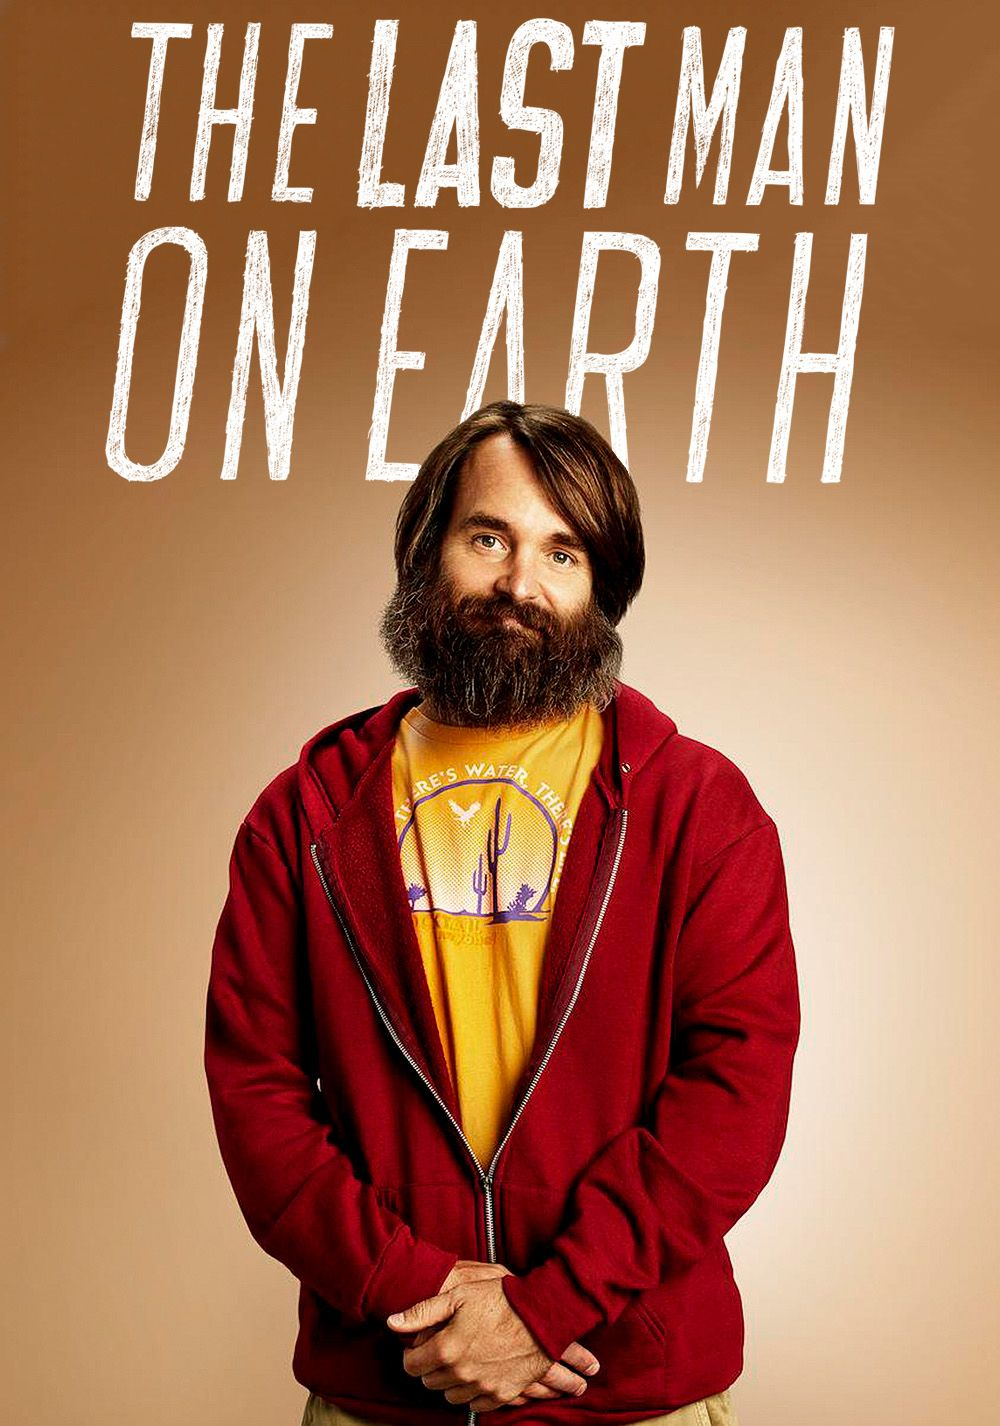 The Last Man On Earth With Images Last Man Earth Seasons